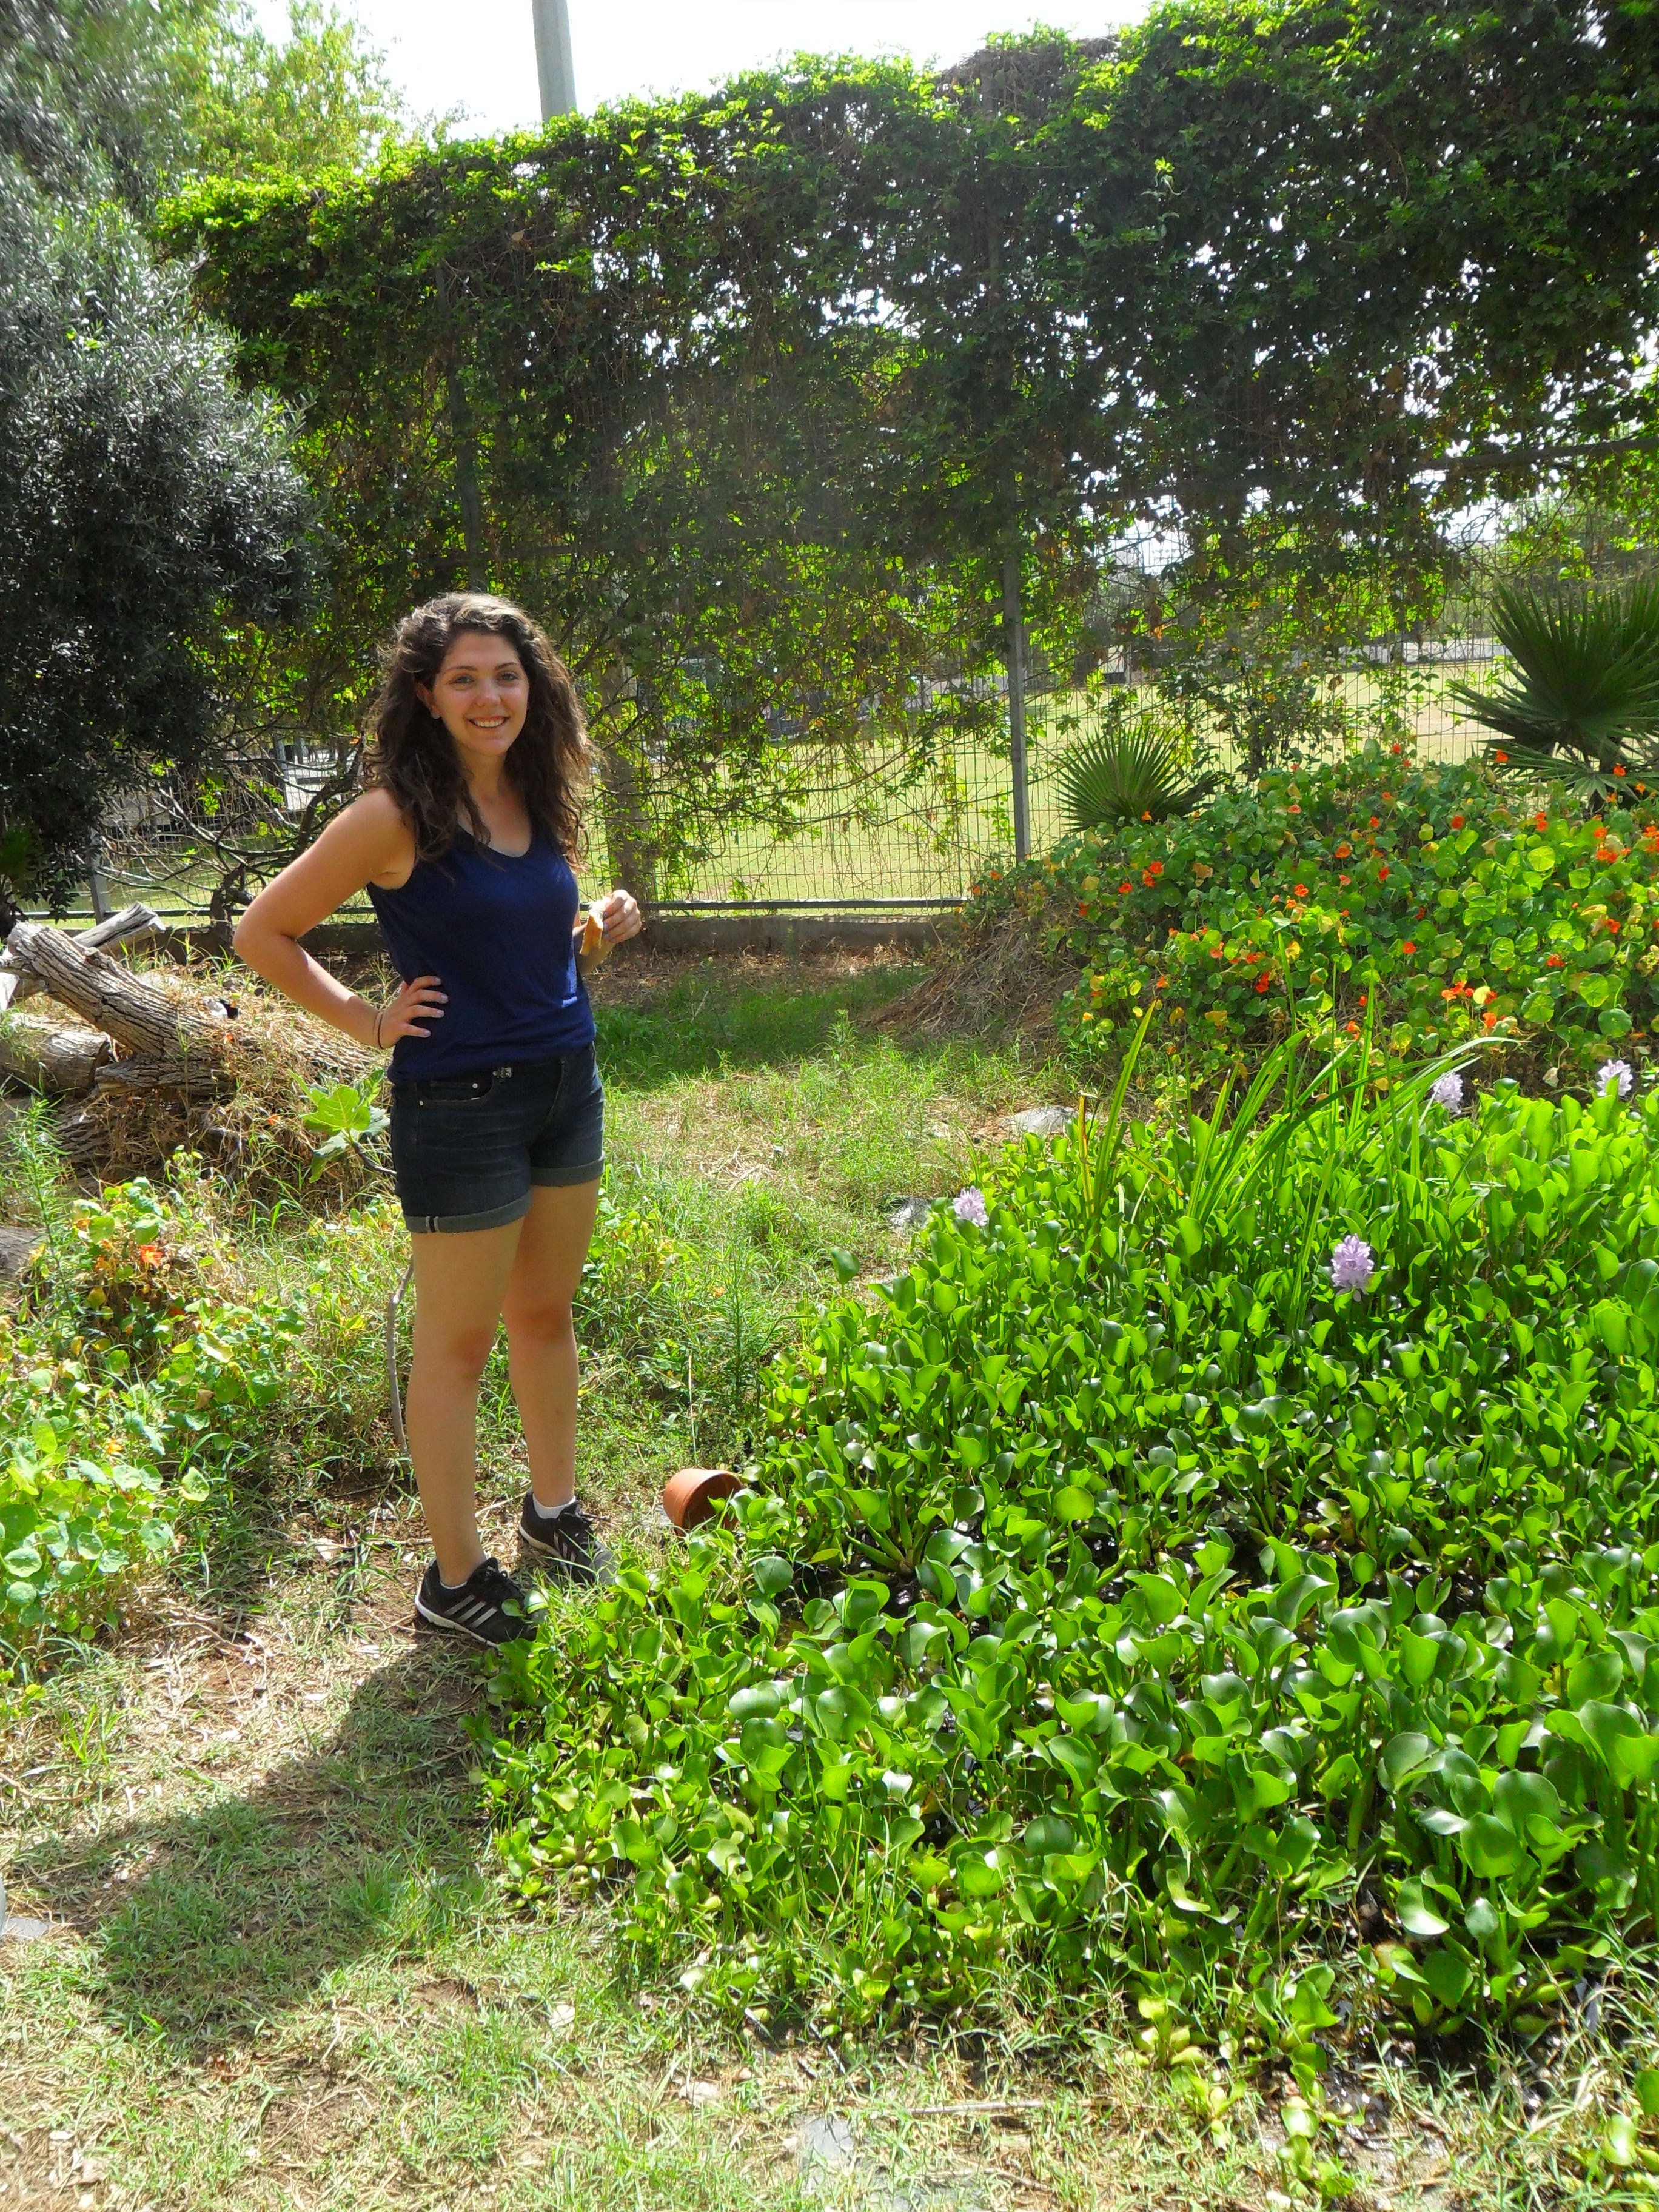 A picture of me standing in an urban farm surrounded by bright green bushes with flowers in them.